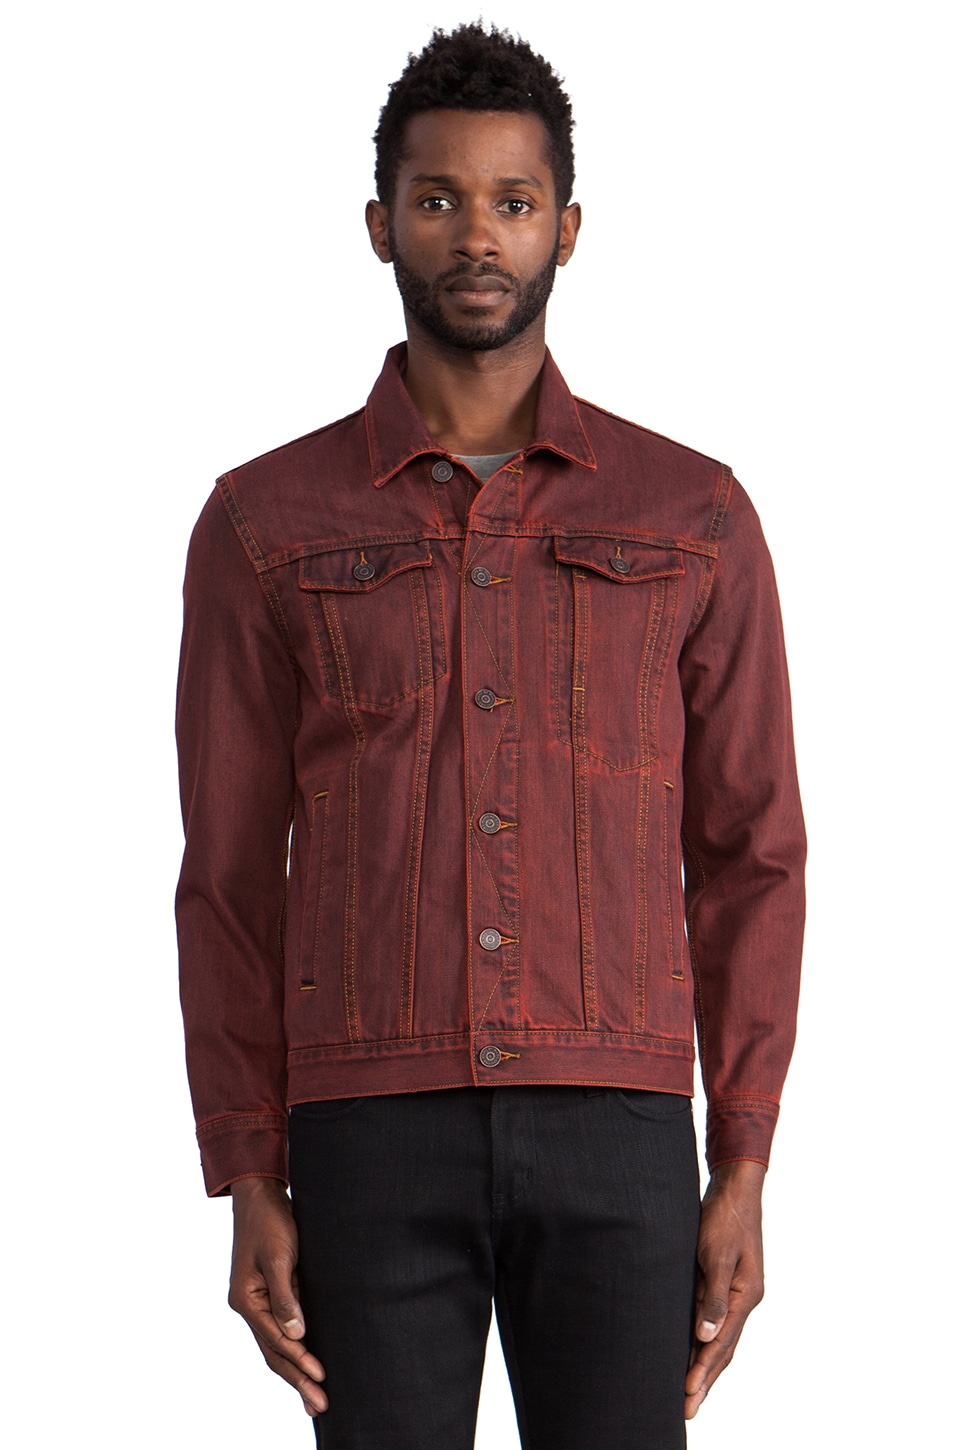 Marc by Marc Jacobs Overdyed Denim Jacket in Electric Red Multi